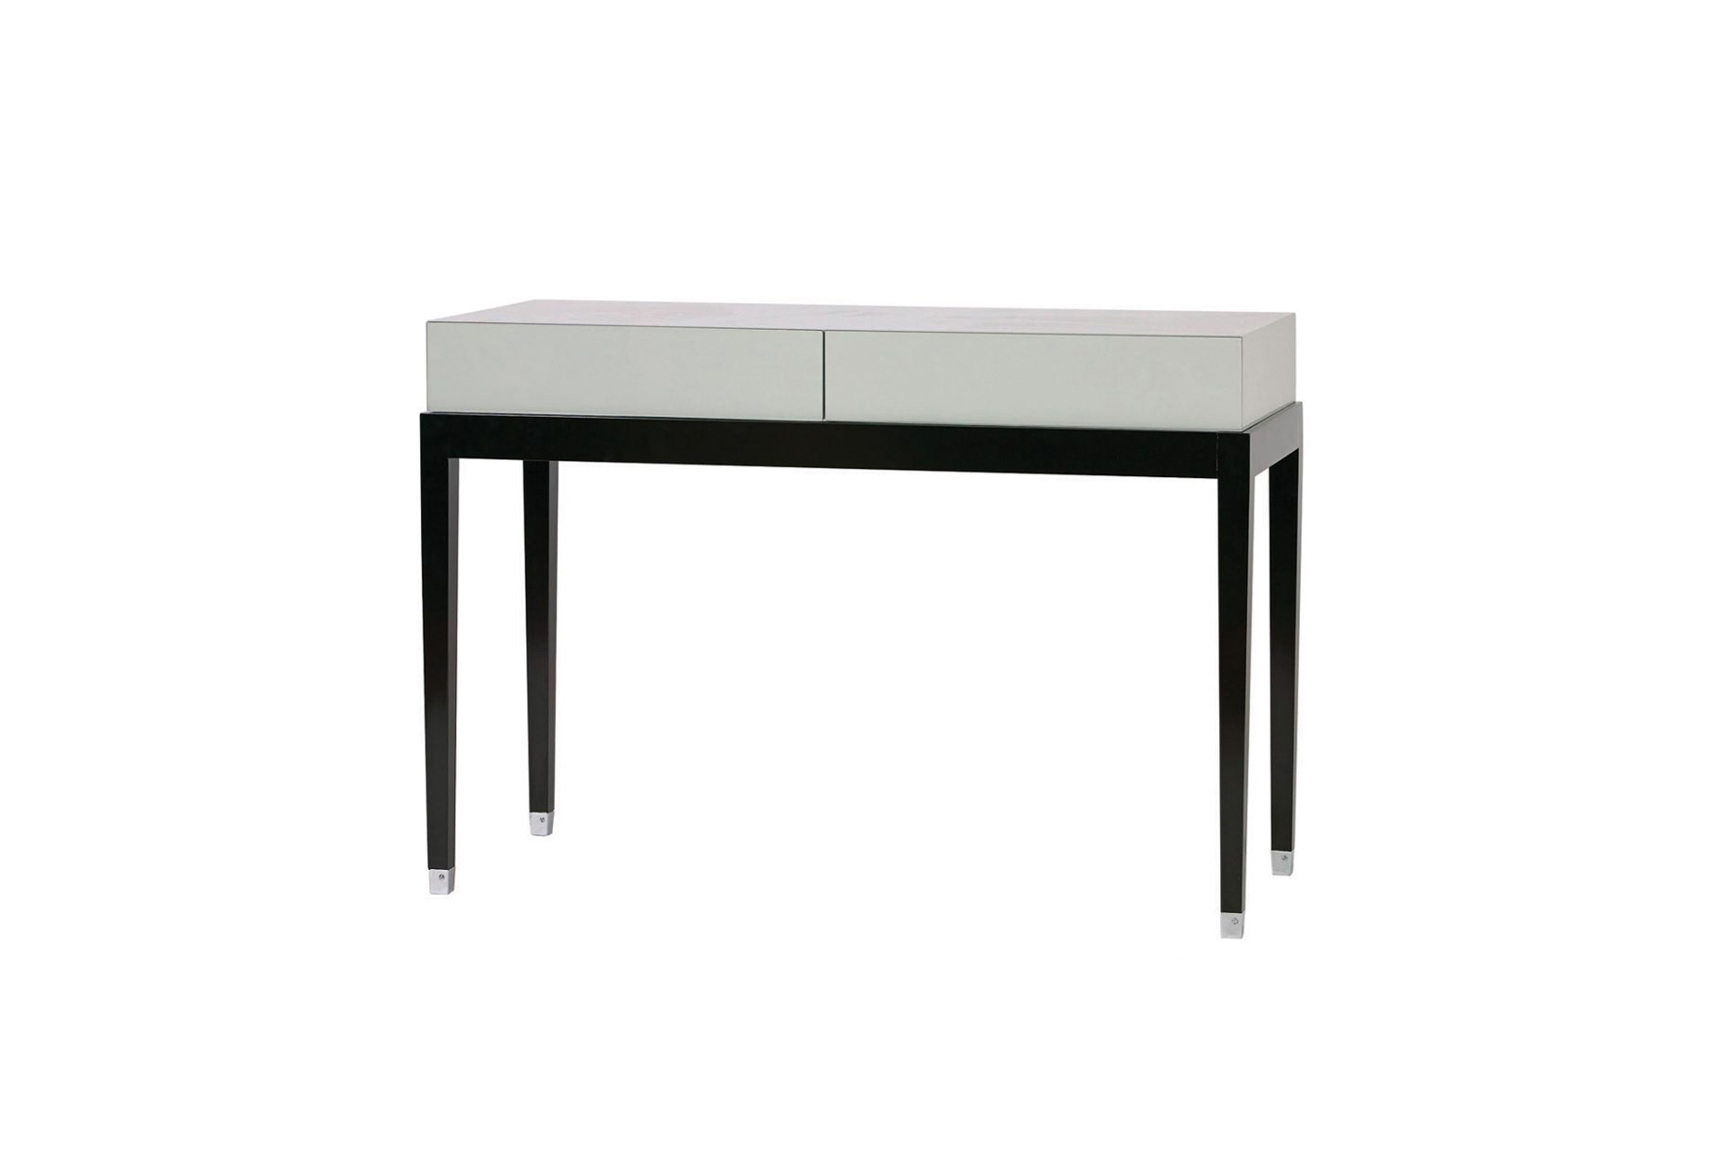 Console Tables Archives – Jan Cavelle Inside Archive Grey Console Tables (Gallery 4 of 20)